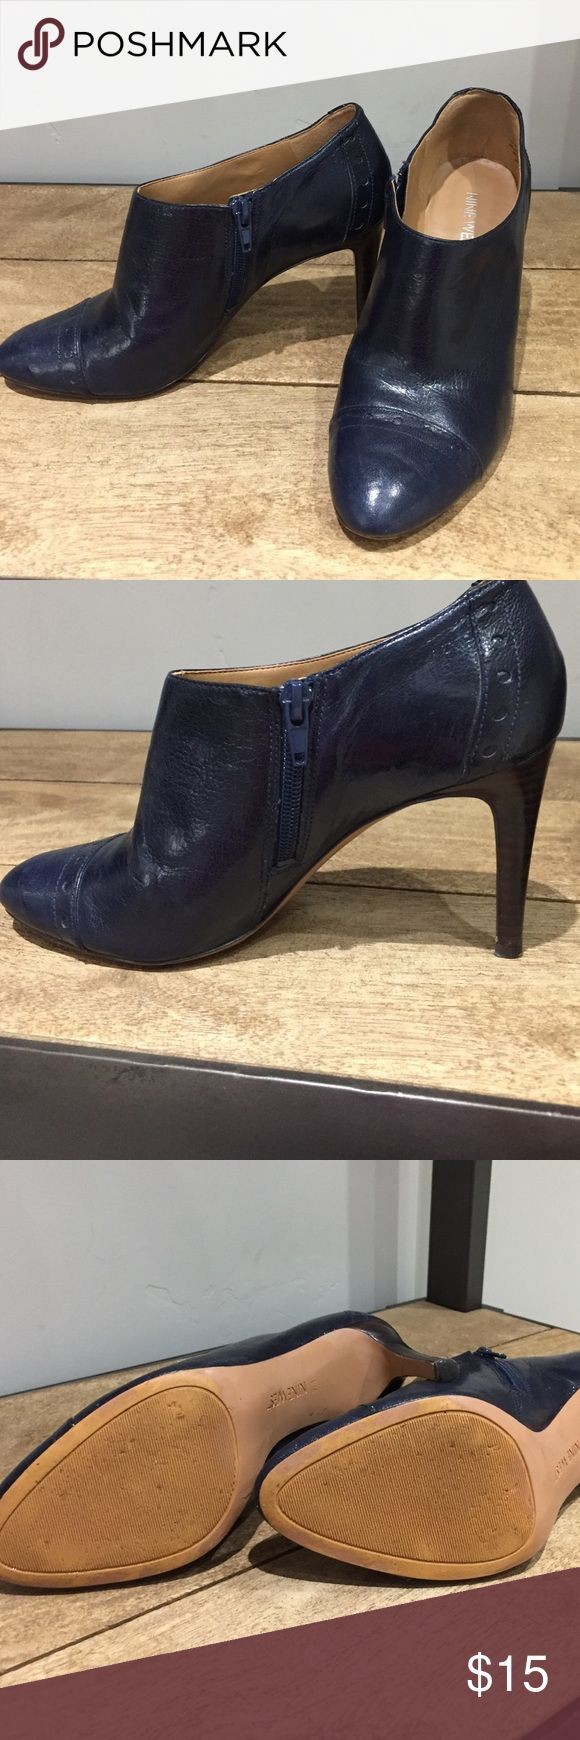 Navy ankle boots So cute. These ankle boots show some wear on the heal as shown but otherwise they are in great condition. Worn a handful of times. Nine West Shoes Ankle Boots & Booties